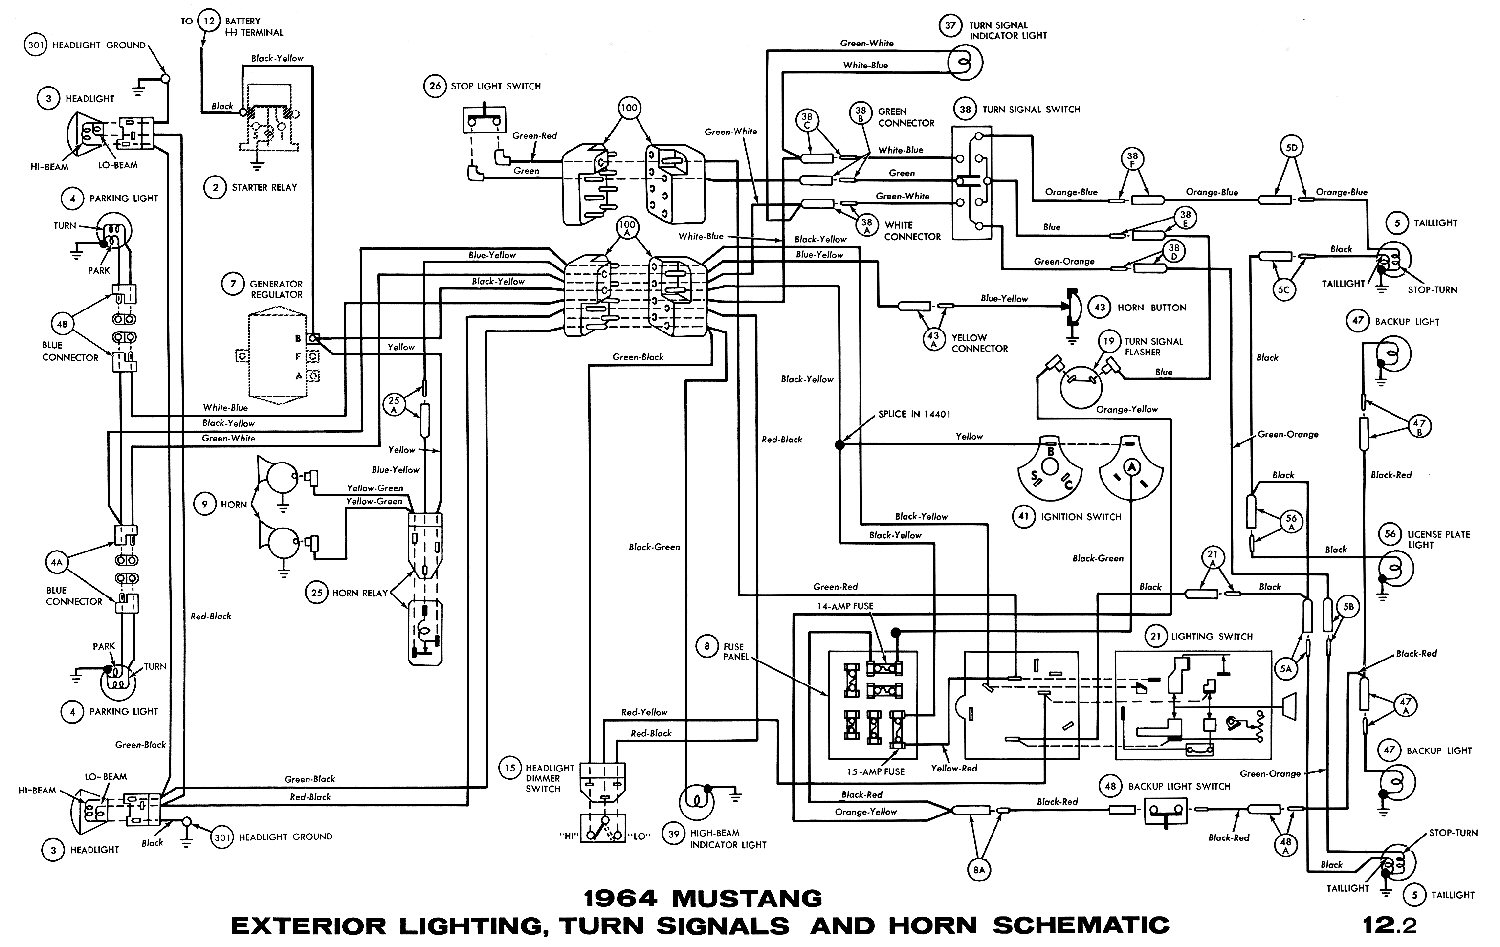 1964i 1964 mustang wiring diagrams average joe restoration 67 cougar turn signal wiring diagram at eliteediting.co